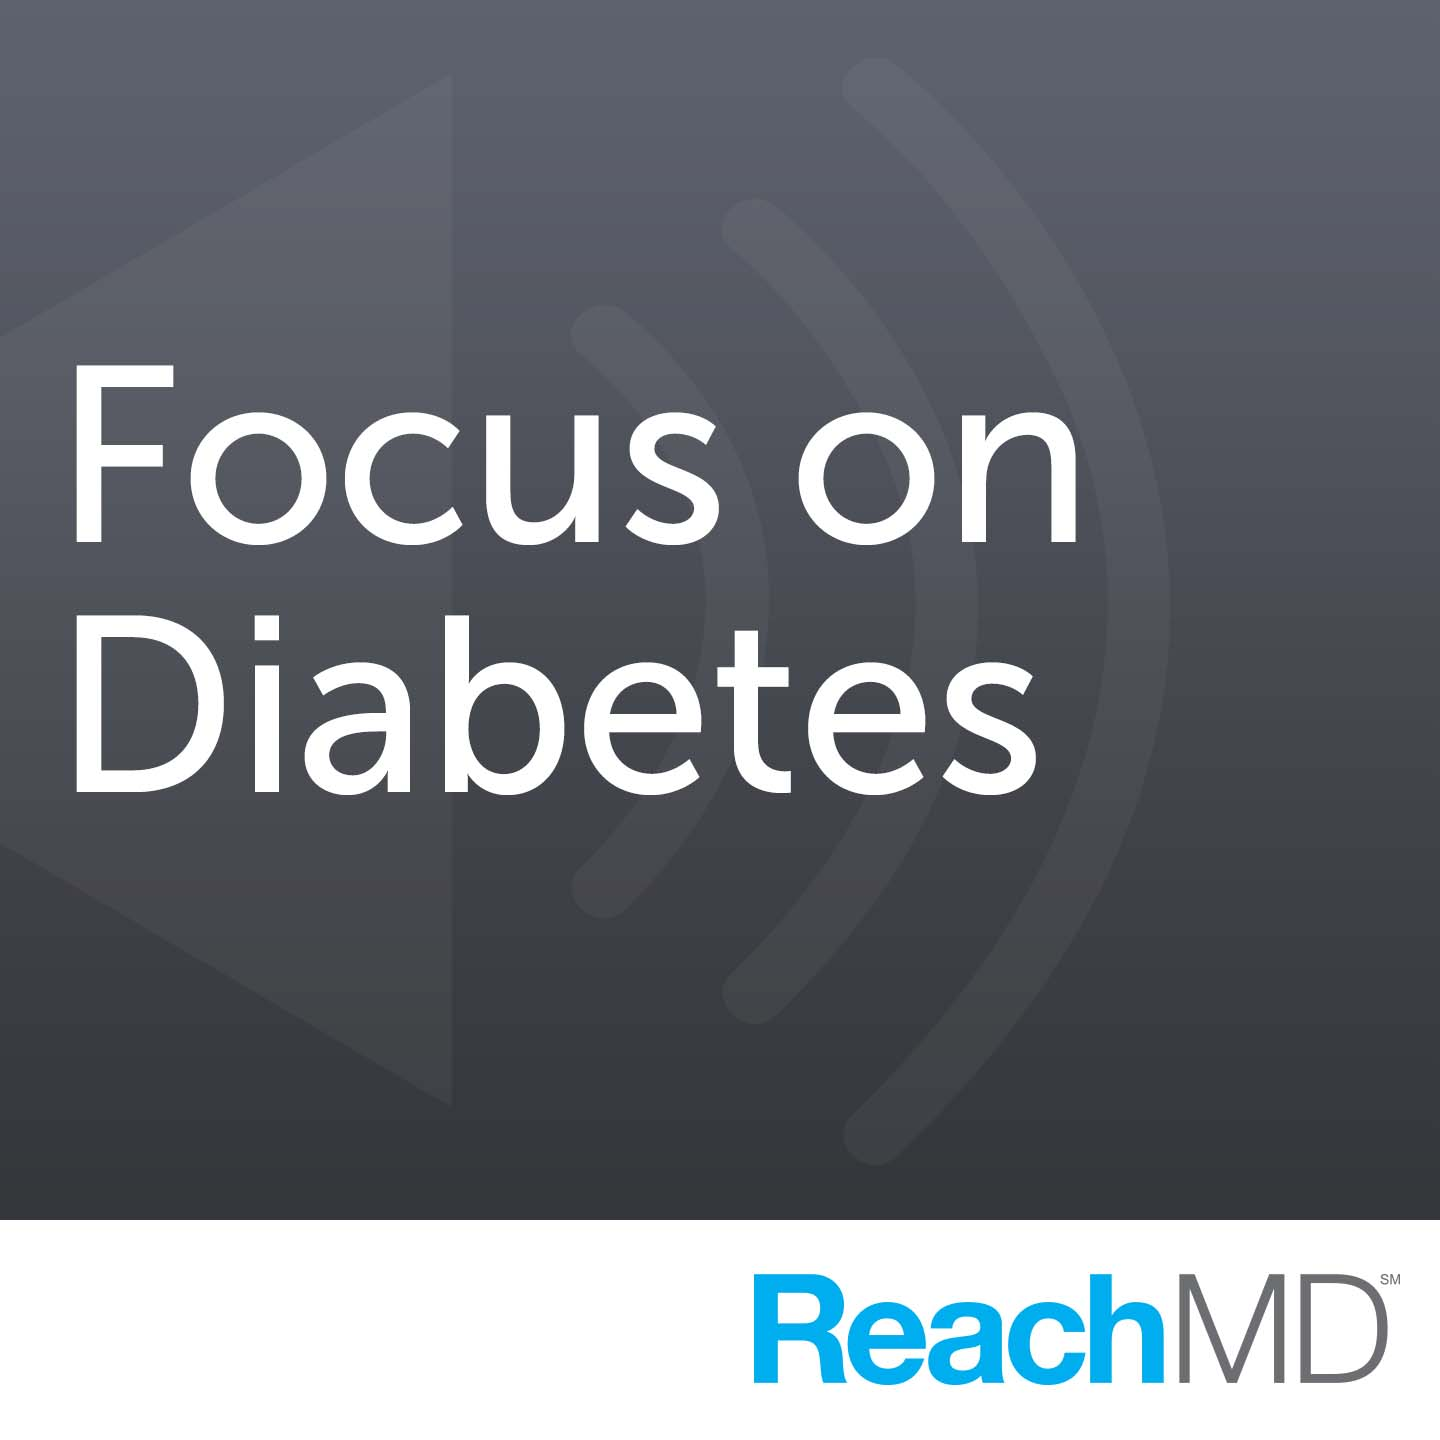 Focus on Diabetes